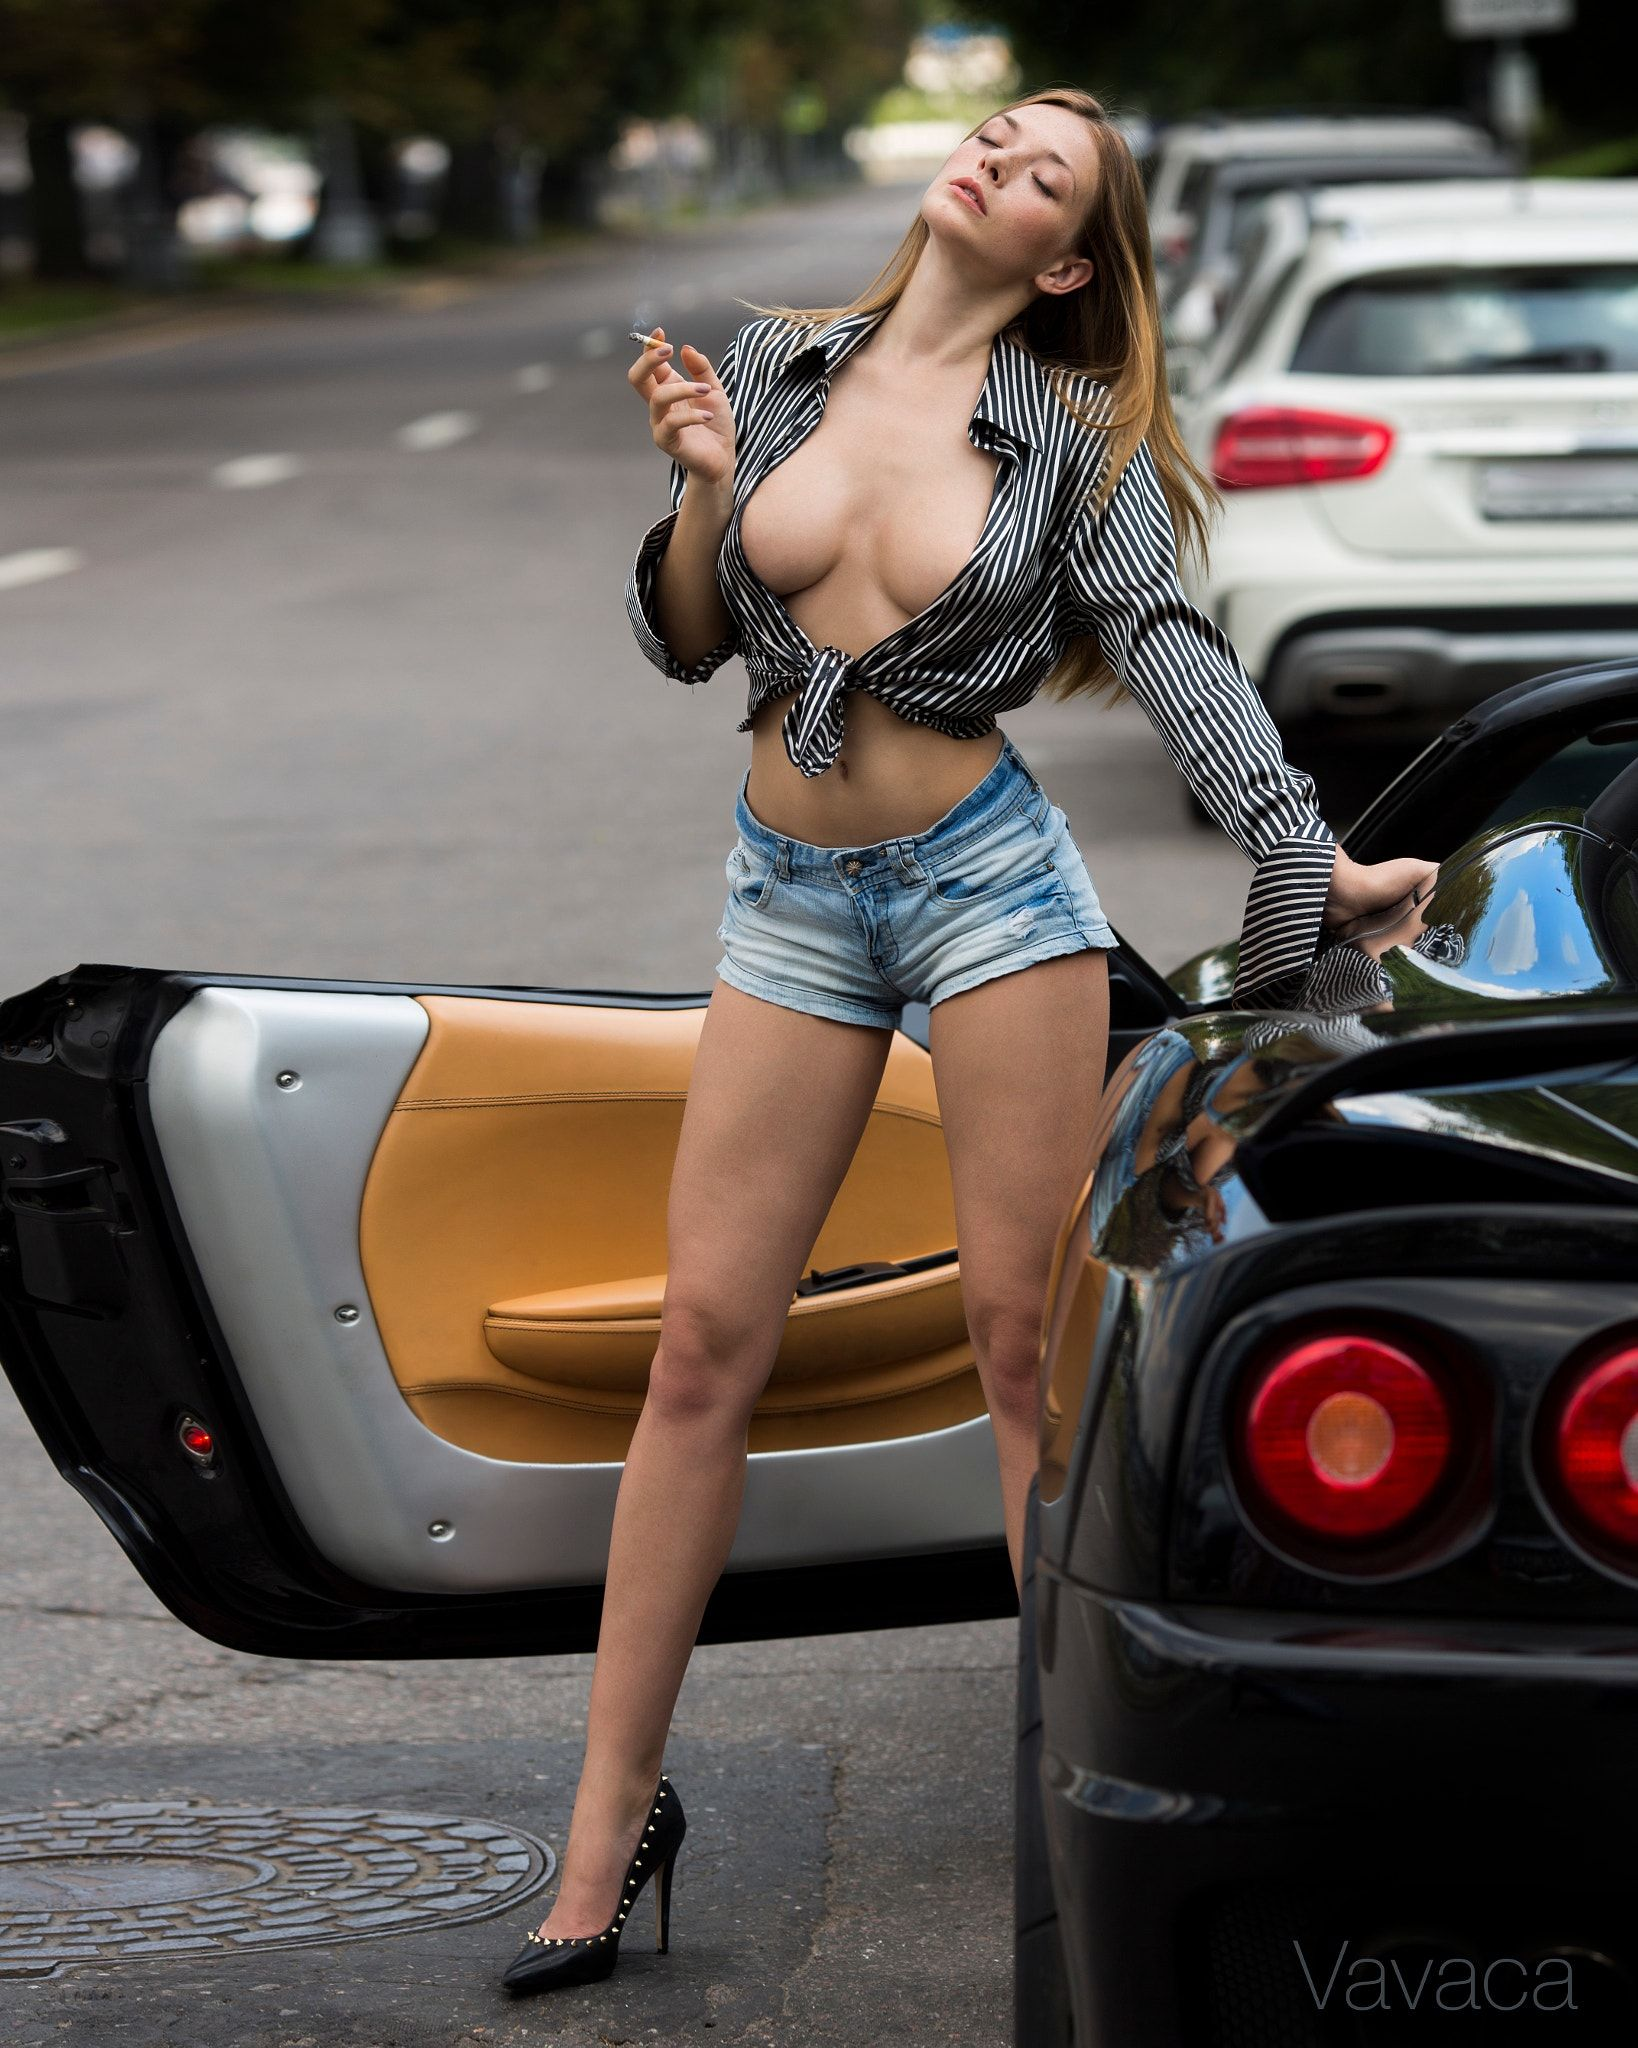 Hot sexy naked girls in a car